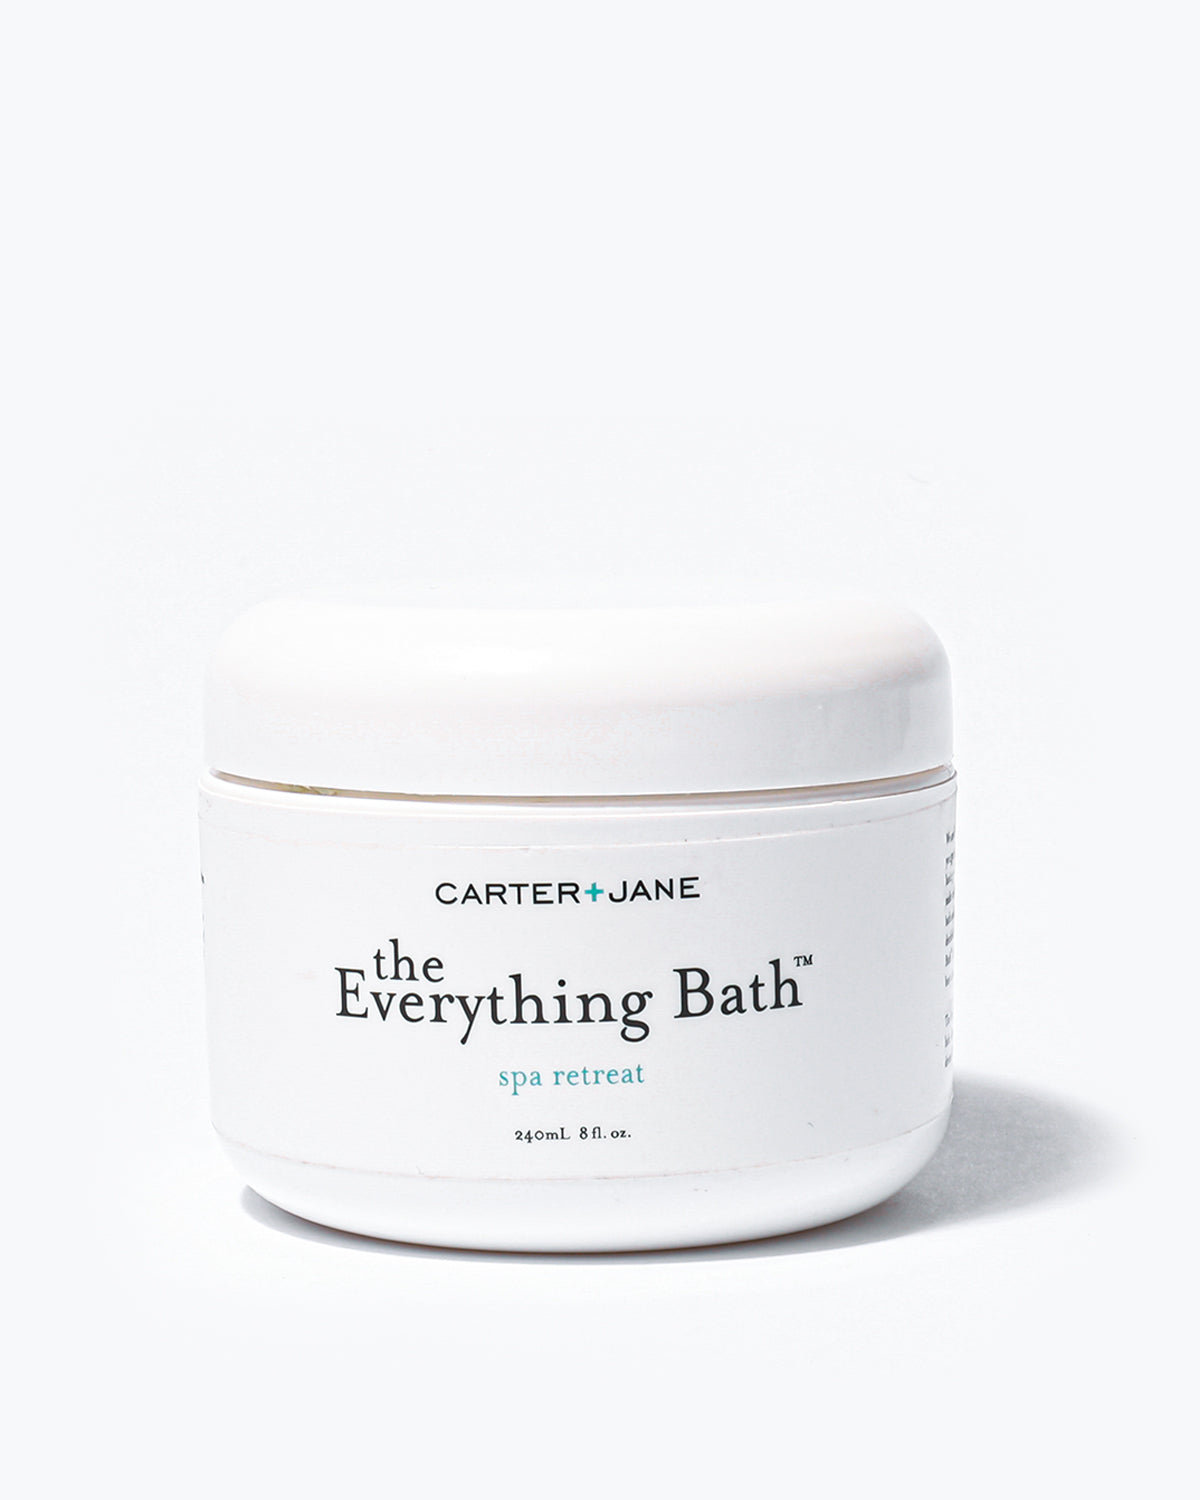 The Everything Bath™ Spa Retreat